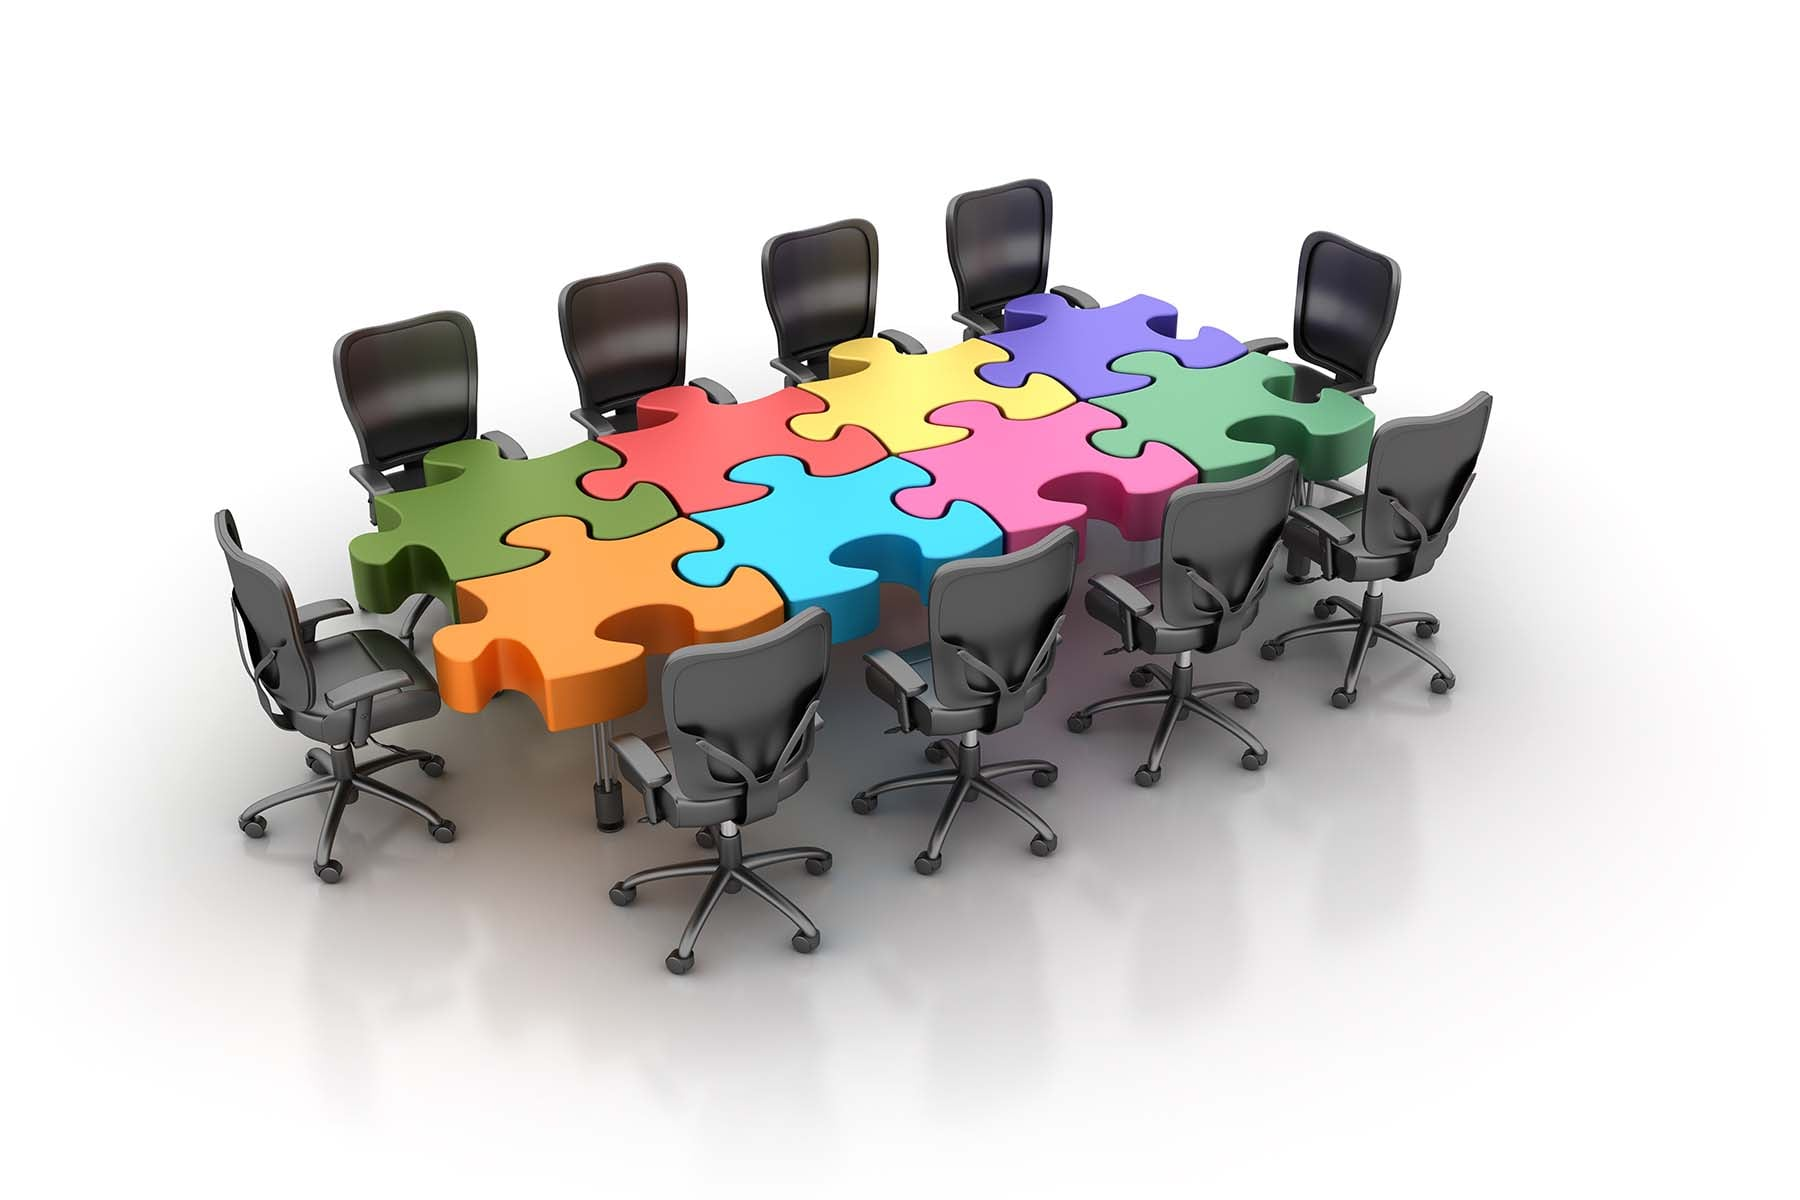 conference table made of puzzle pieces